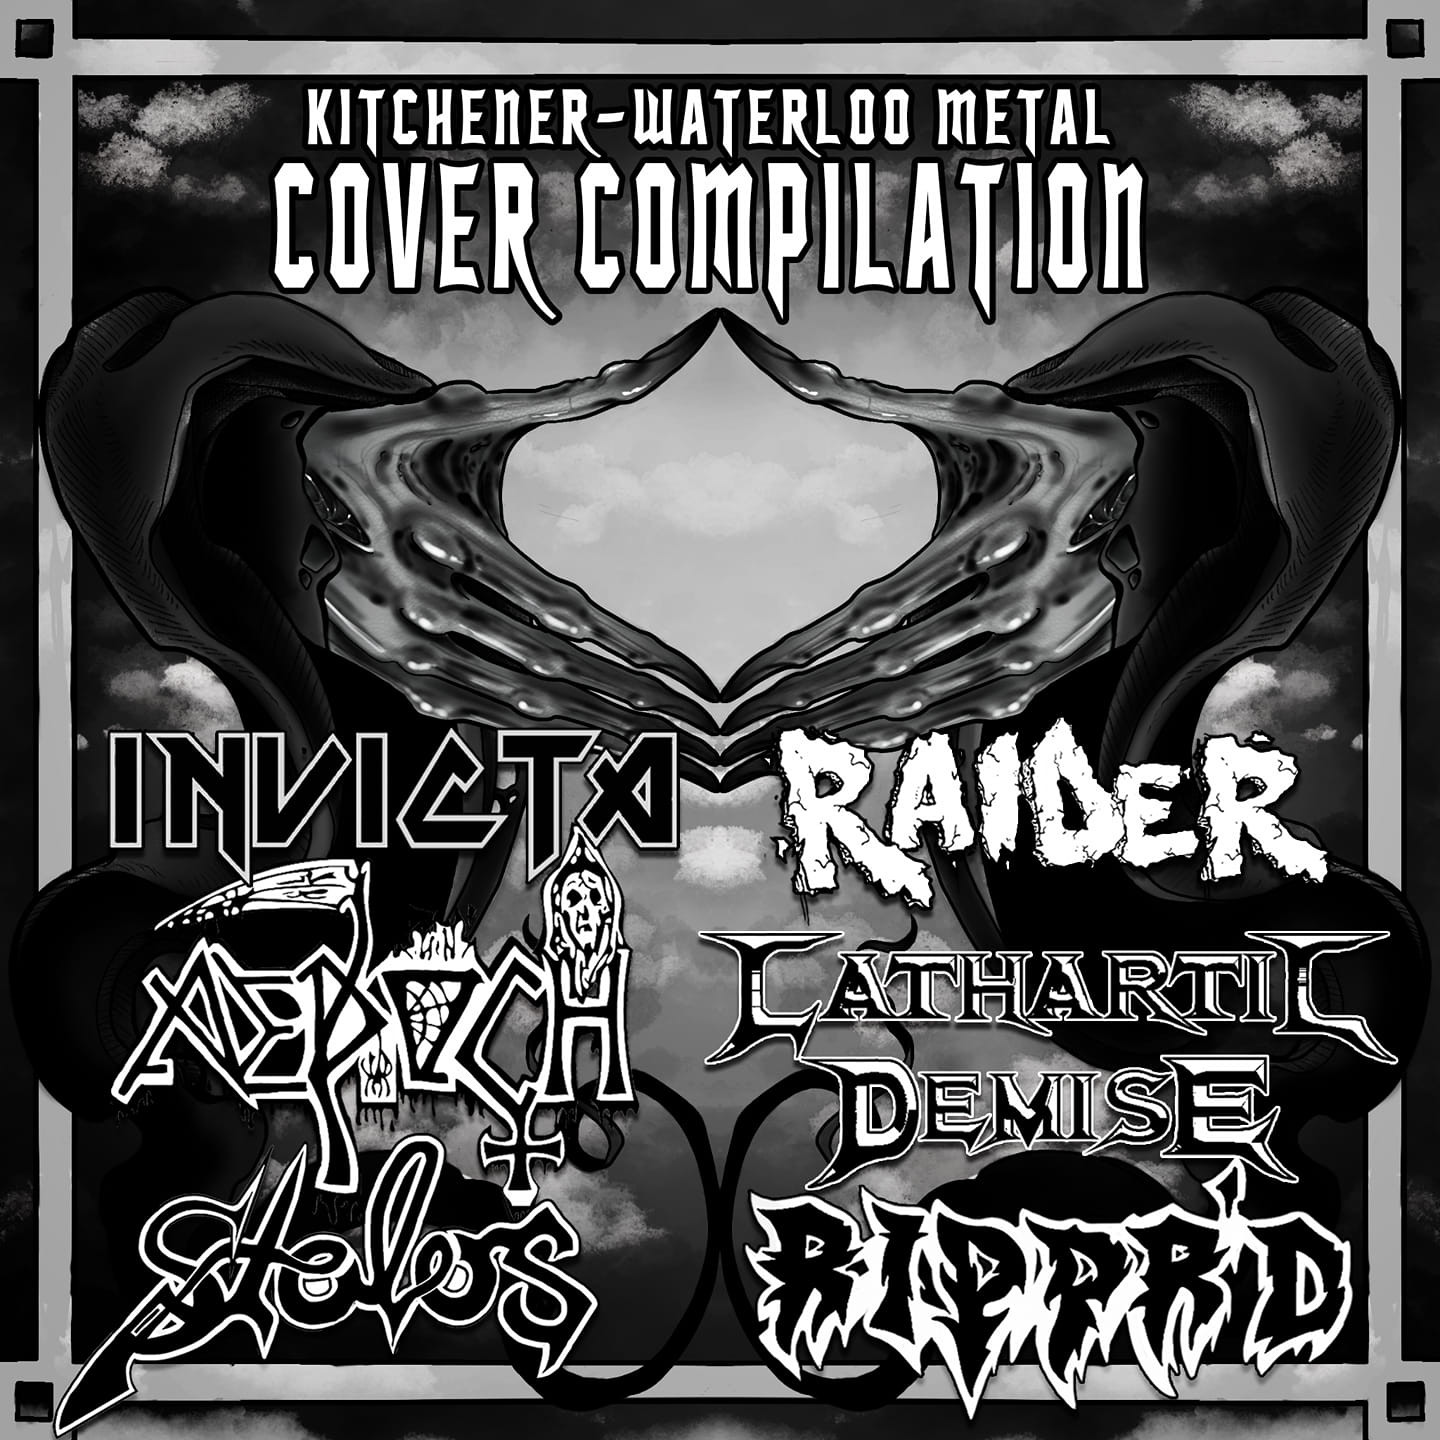 Invicta - Coming to all streaming platforms FRIDAY MAY 7, 2021, we are stoked to bring you: The Kitchener-Waterloo Metal Cover Compilation!